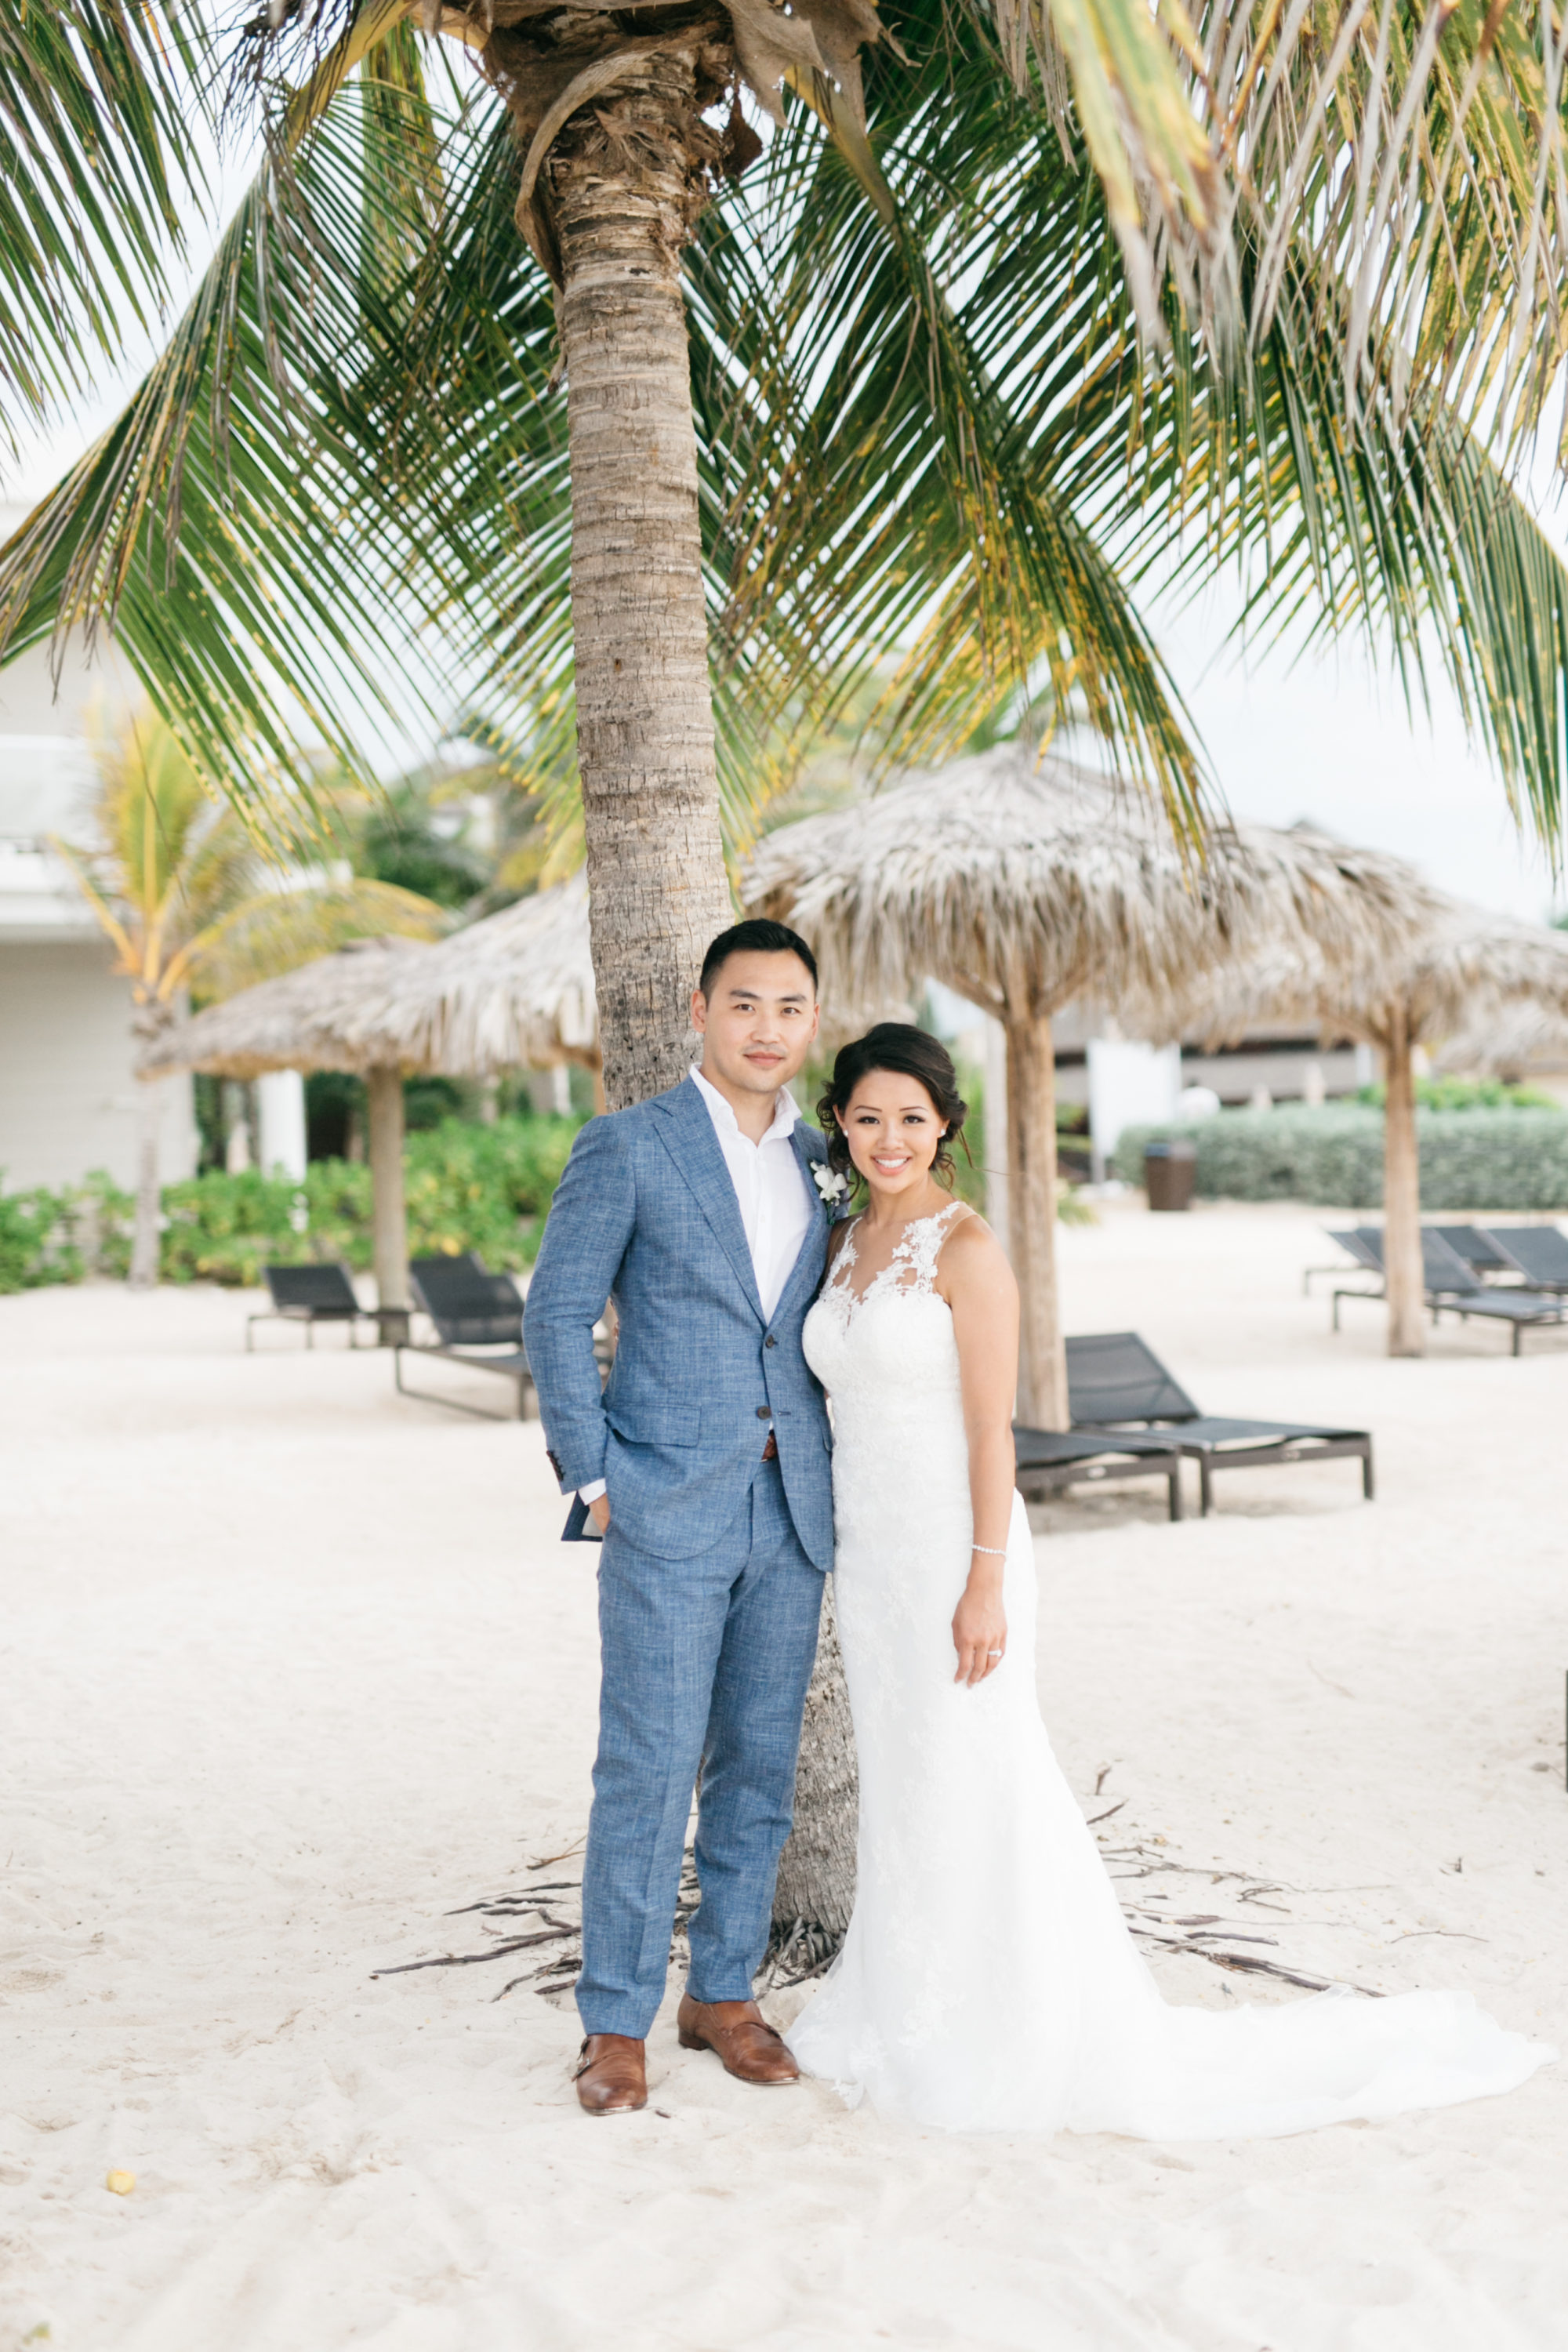 Bride and groom portrait at Royalton White Sands Resort in Montego Bay